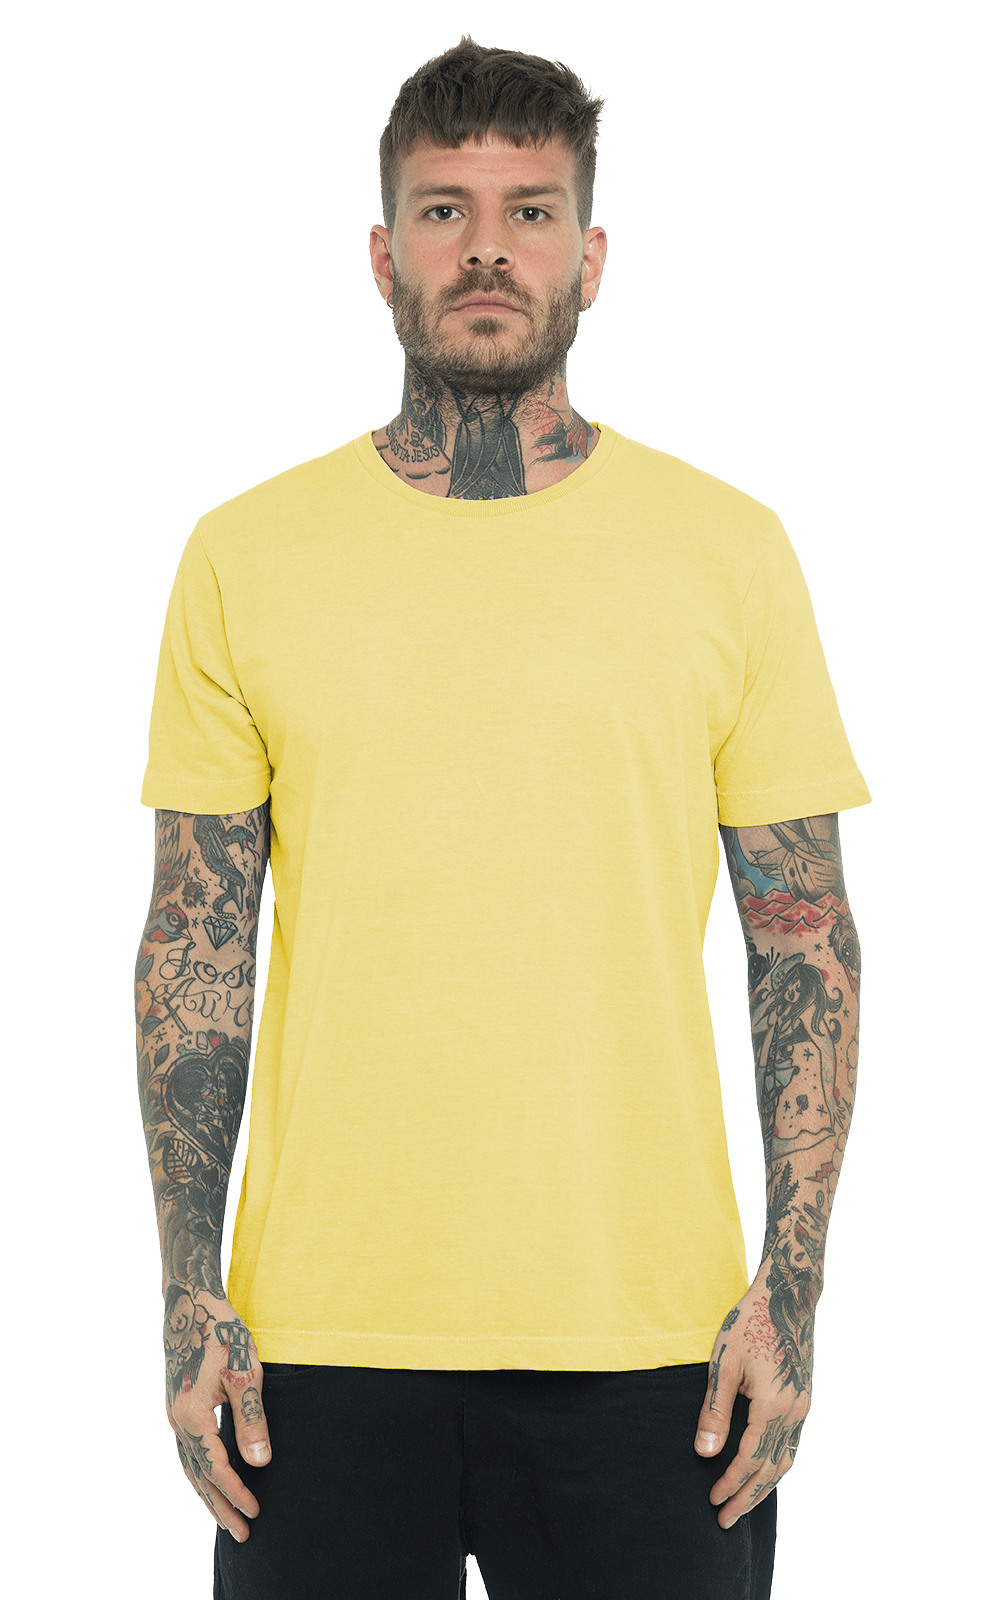 Camiseta_Tinturada_Yellow_Frente